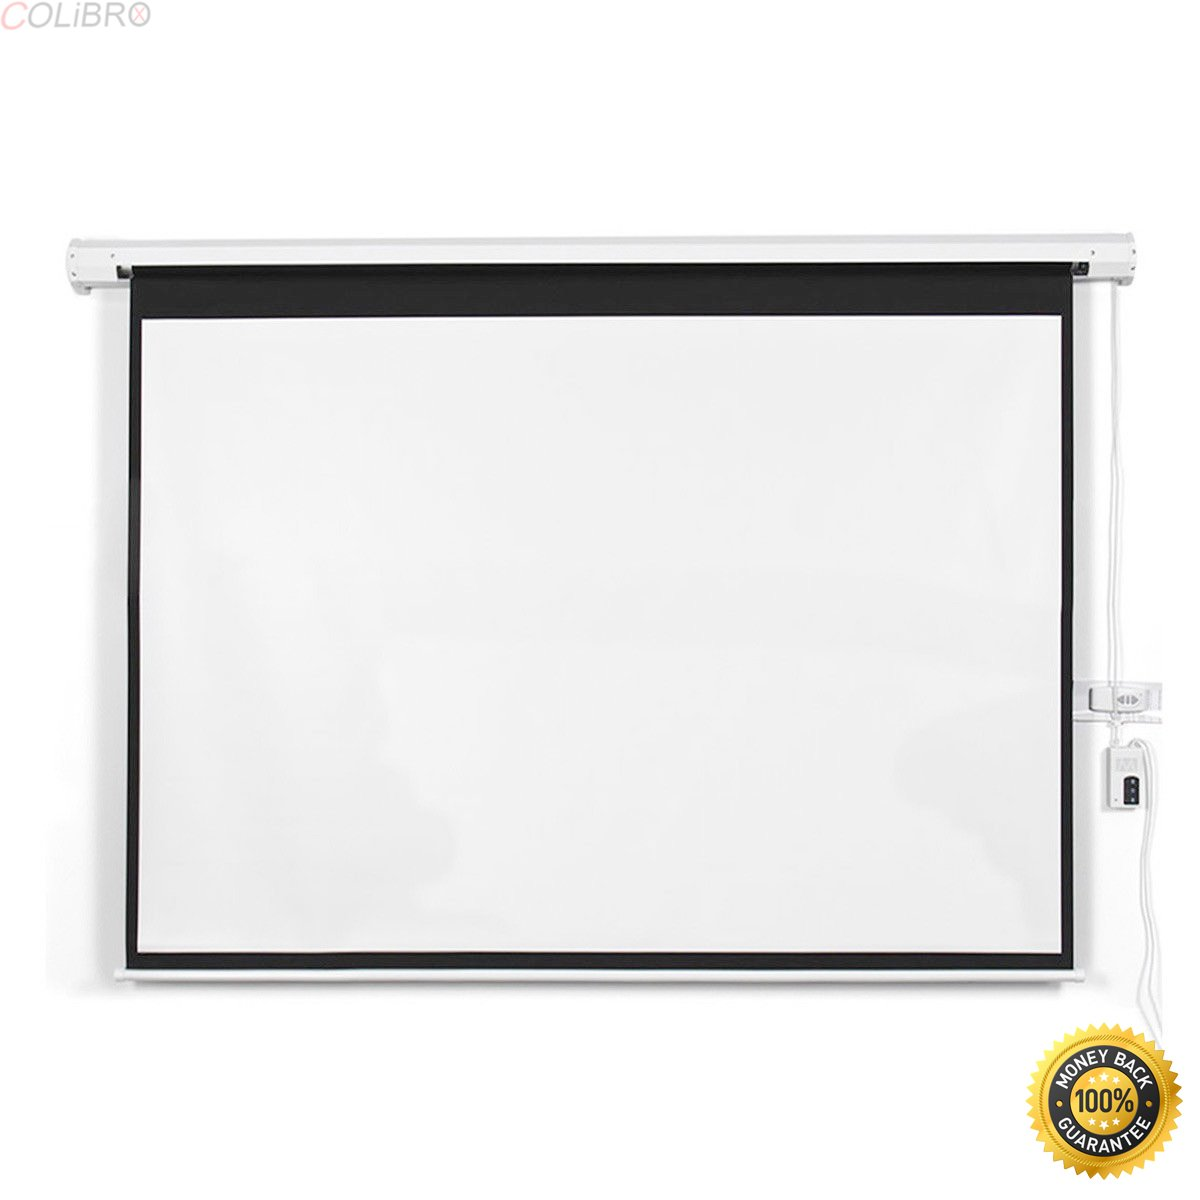 "COLIBROX--New 100"" 16:9 HD Foldable Electric Motorized Projector Screen + Remote,projector screen best buy,home theater projector screen"